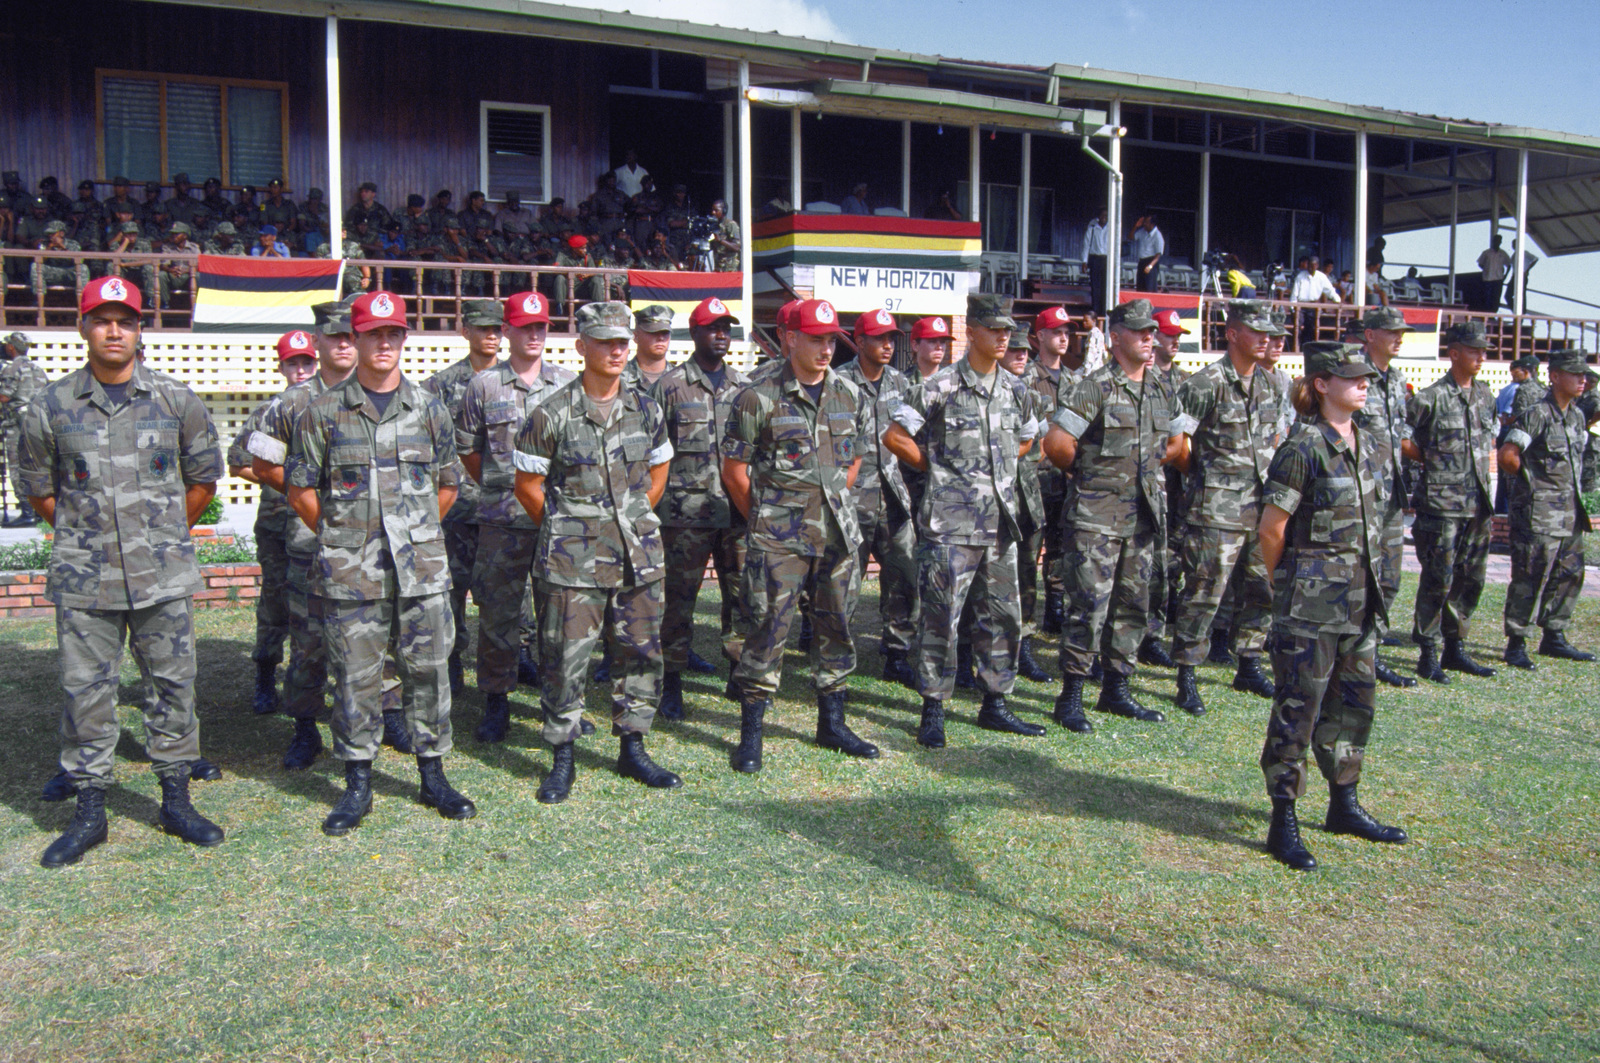 Military personnel from the Air Force, Air Force Reserve & National Guard, Army, Army National Guard and Marine Corps, comprising Combined Task Force Falcon, stand in formation during the opening ceremony, at Georgetown's National Services Sports Complex. New Horizon '97 is the first combined humanitarian and civic assistance exercise conducted between the United States and Guyana